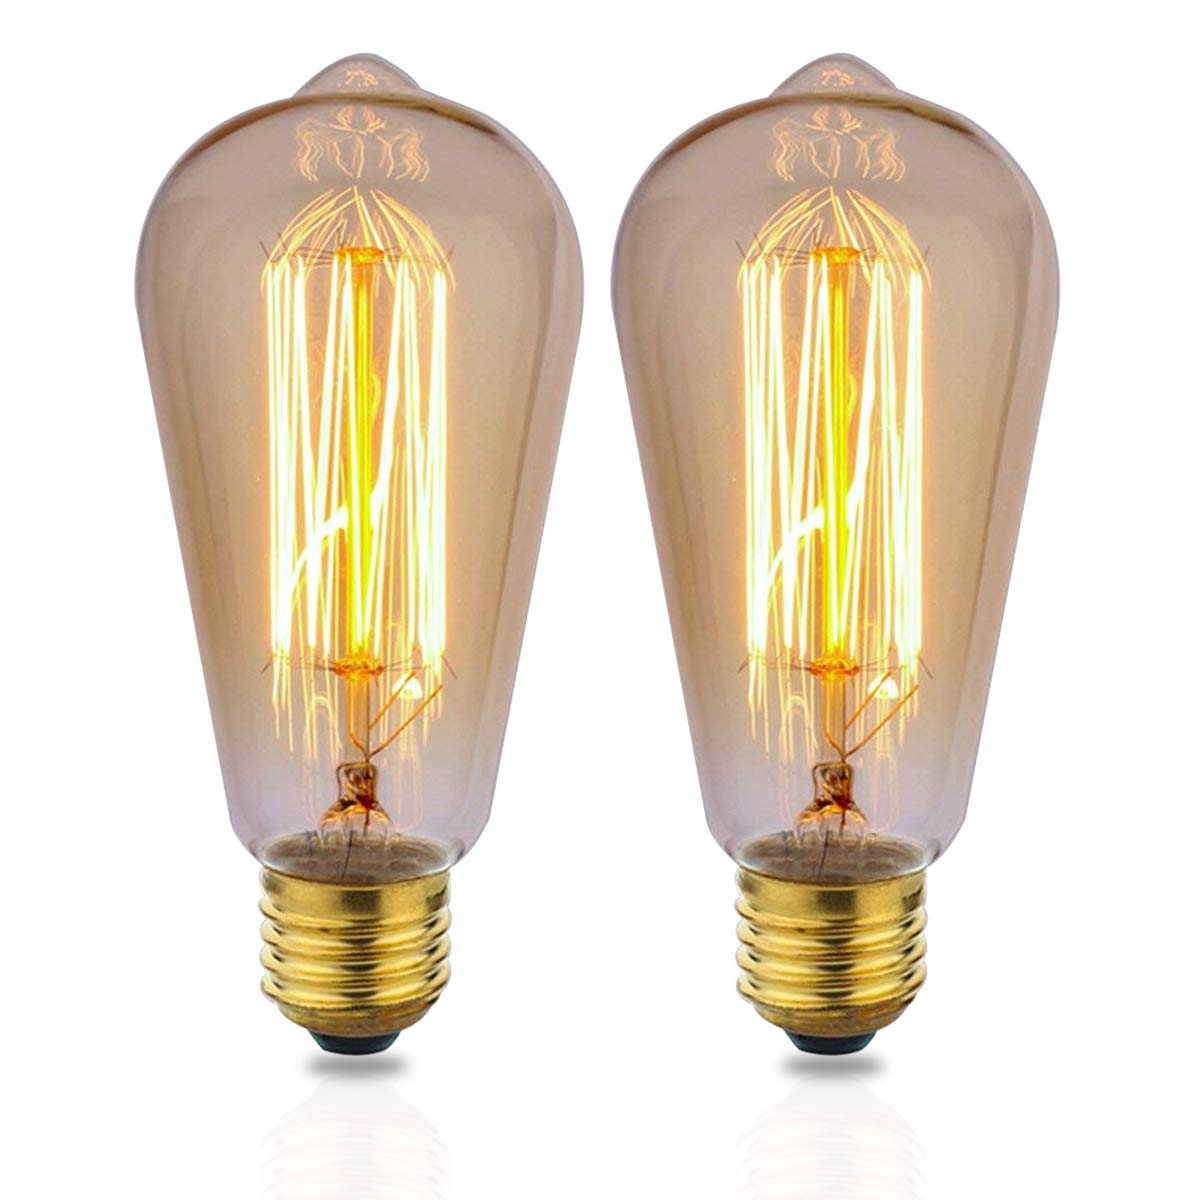 ZOOVQI LED Edison Bulbs 60W E27 Dimmable Vintage Light Bulbs ST64 2200K Warm White Incandescent Bulbs for Home Light Lamp Fixtures (2 Pack)